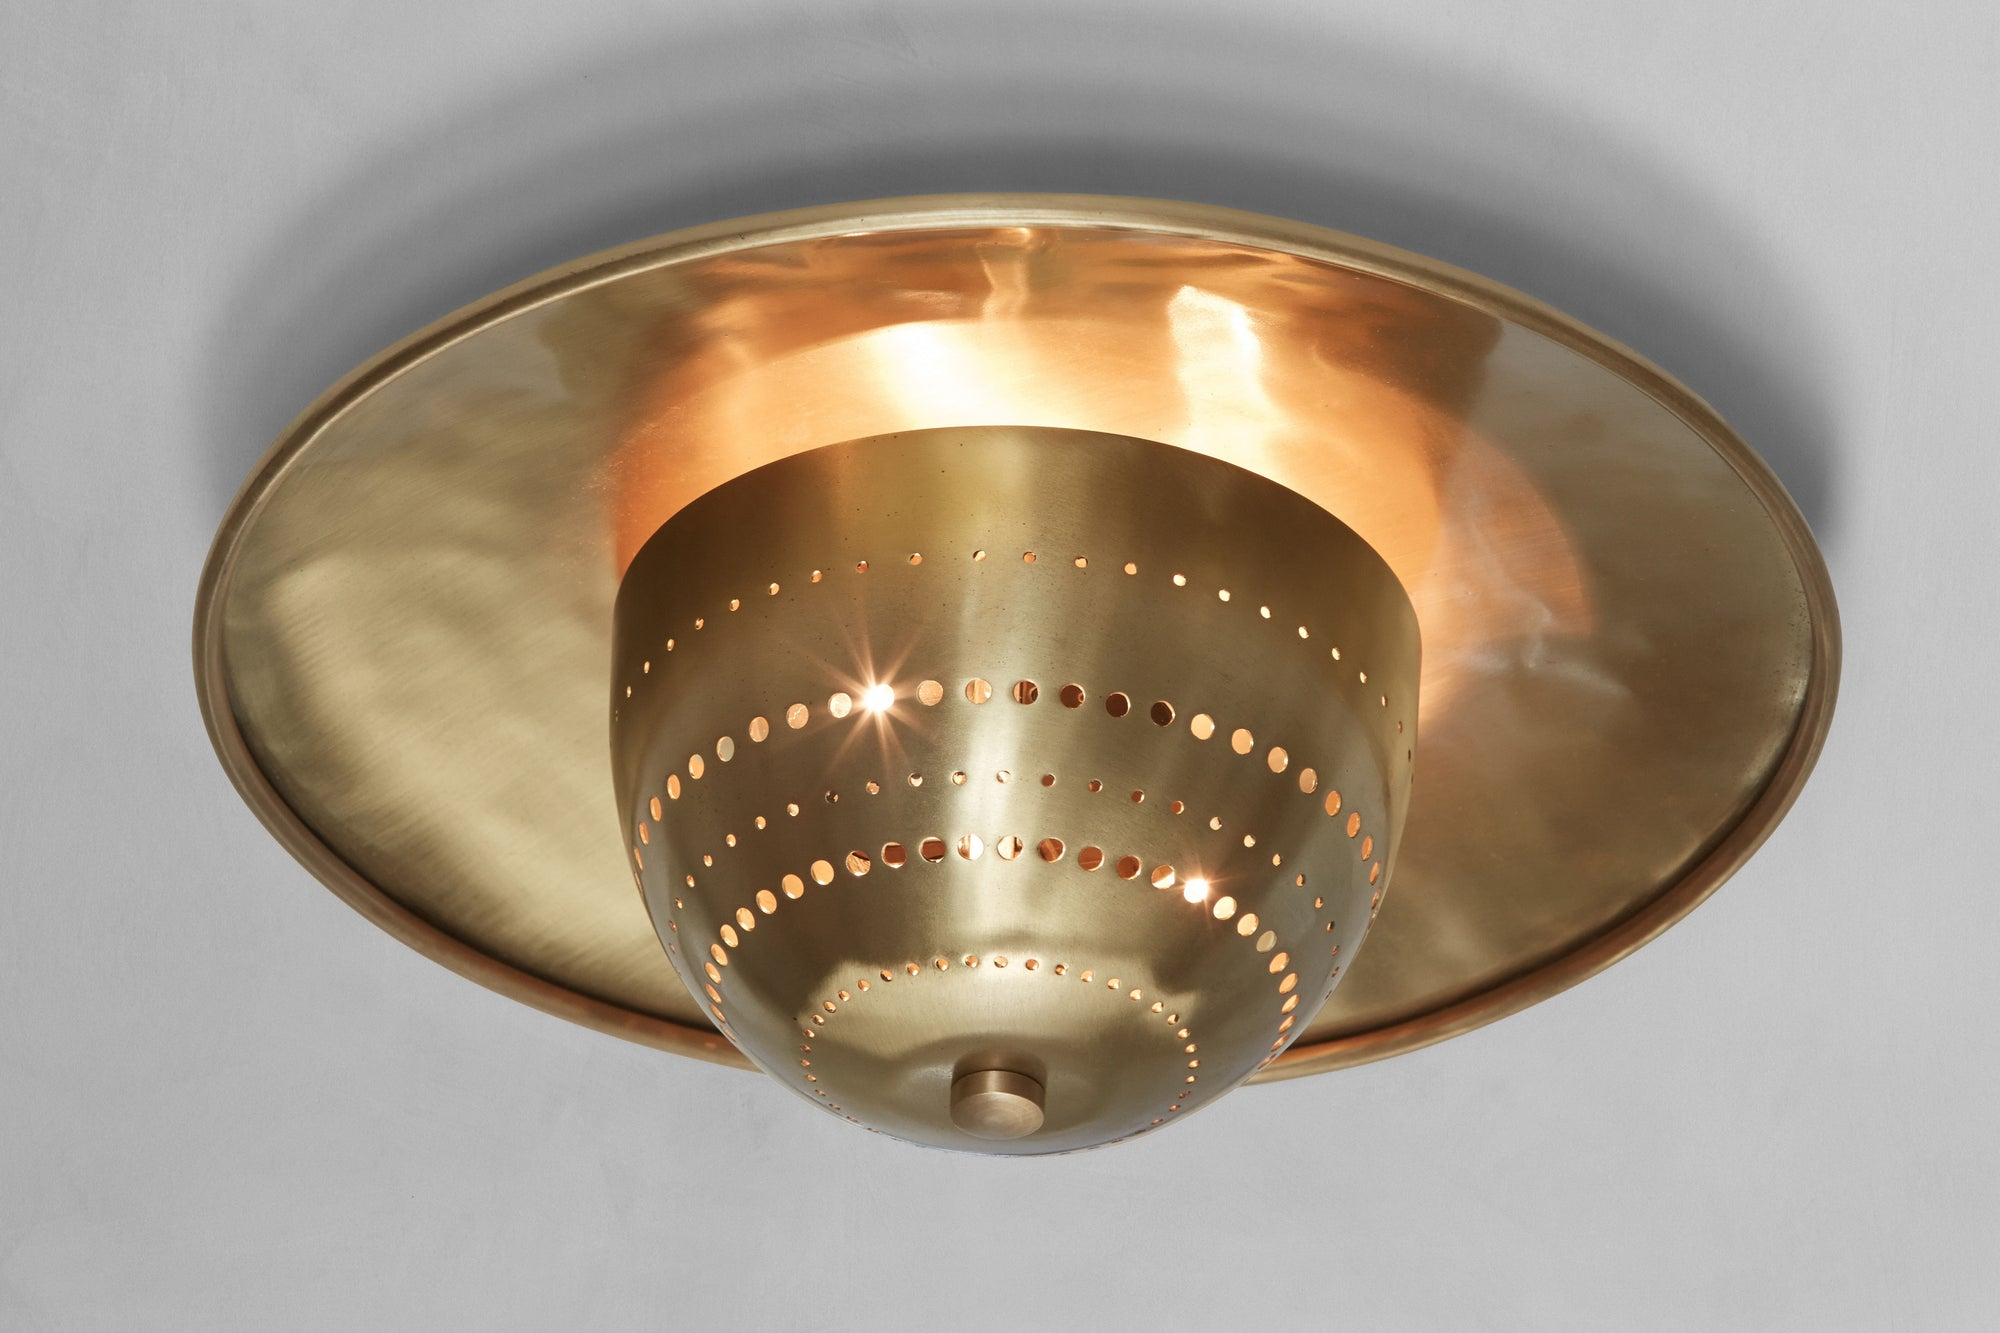 One Nickey Kehoe Convex Flush Mount.